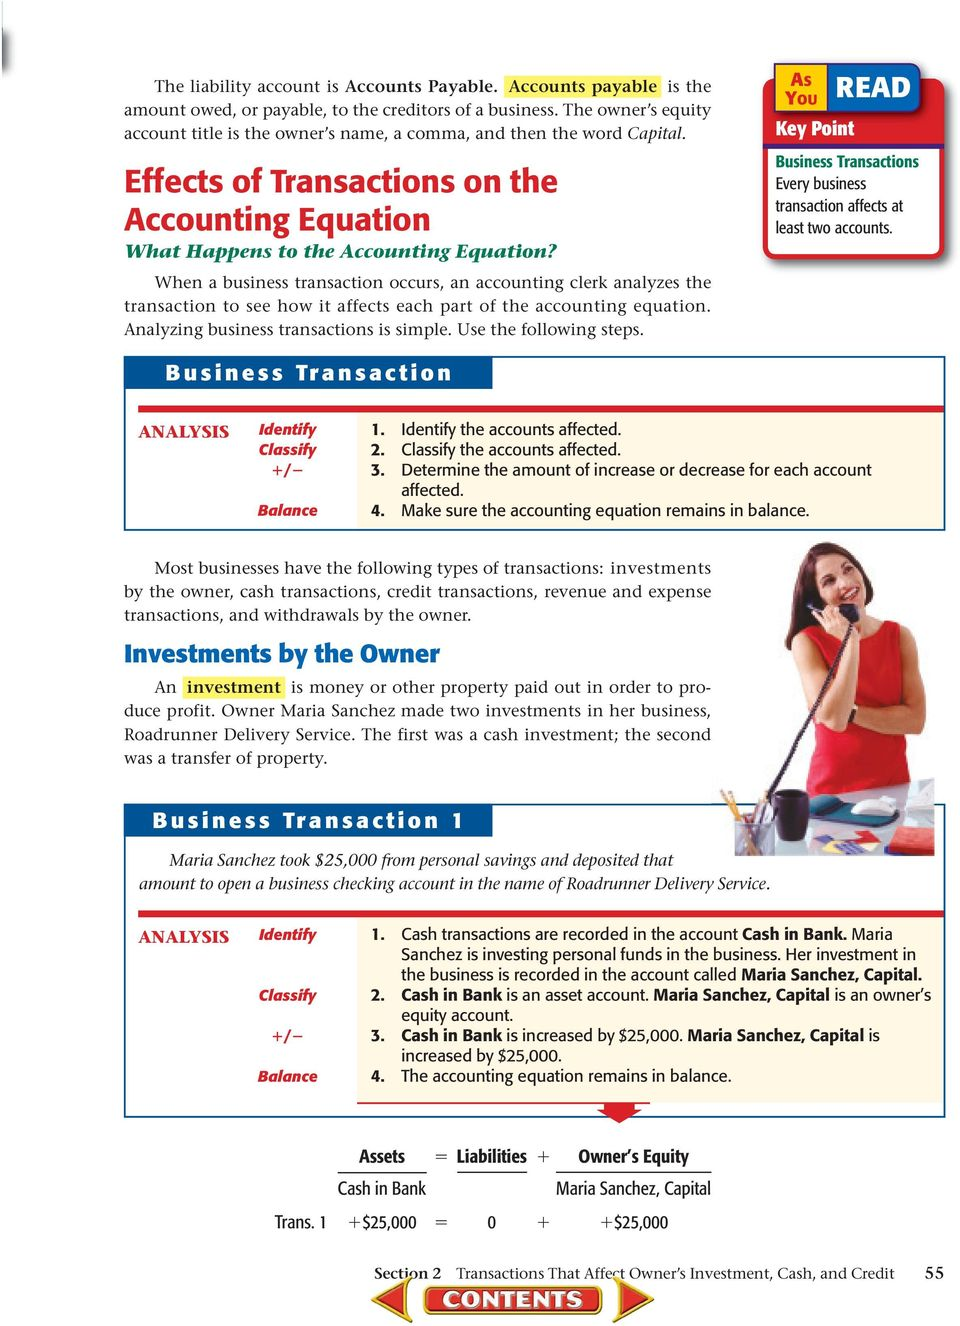 When a business transaction occurs, an accounting clerk analyzes the transaction to see how it affects each part of the accounting equation. Analyzing business transactions is simple.